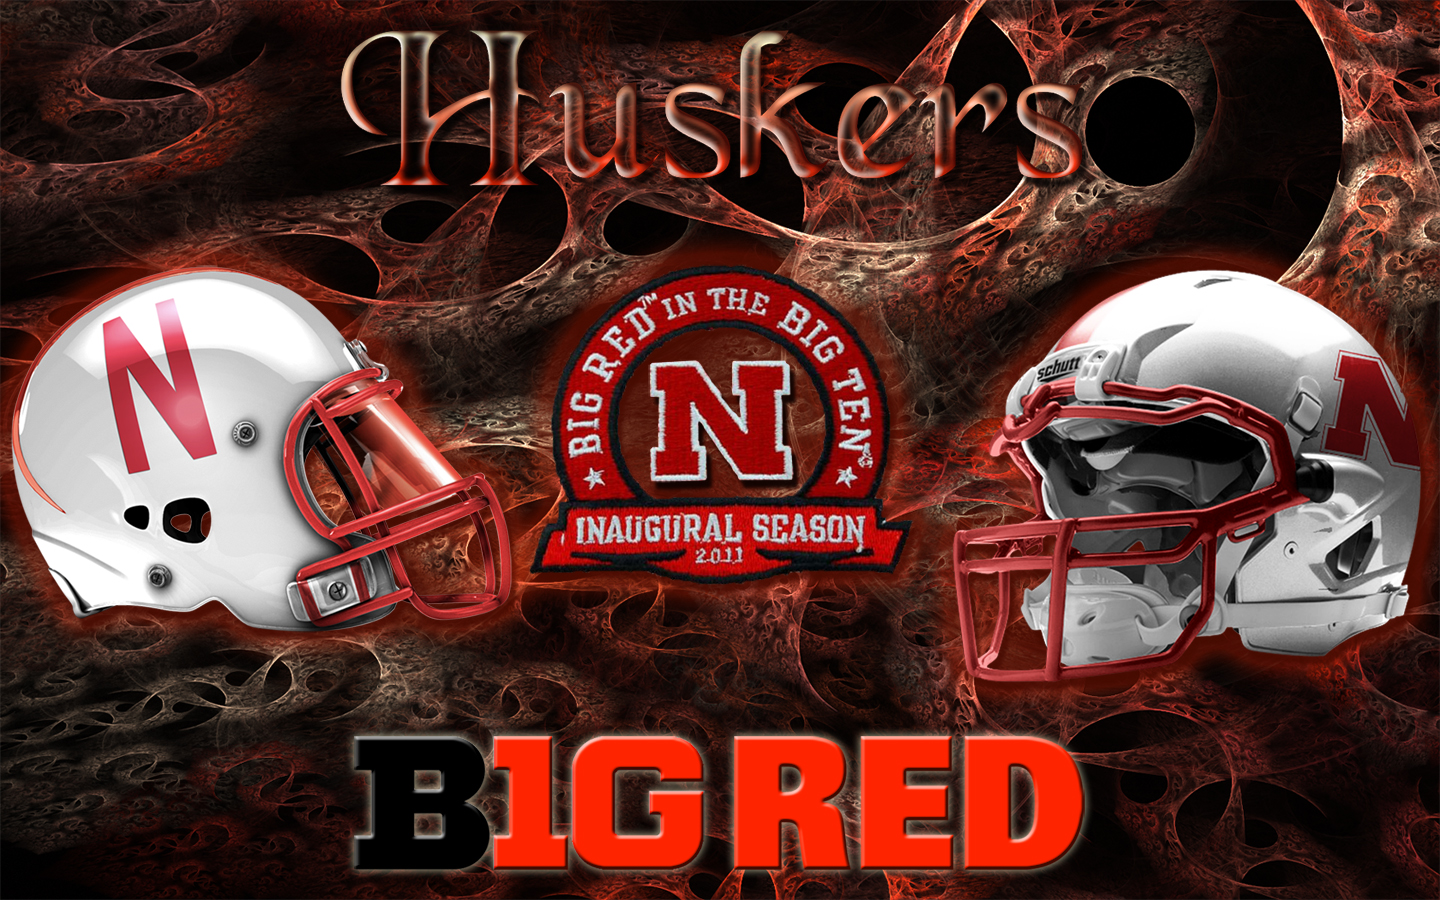 Nebraska Cornhuskers B1G Red Wallpaper Download Wallpaper 1440x900